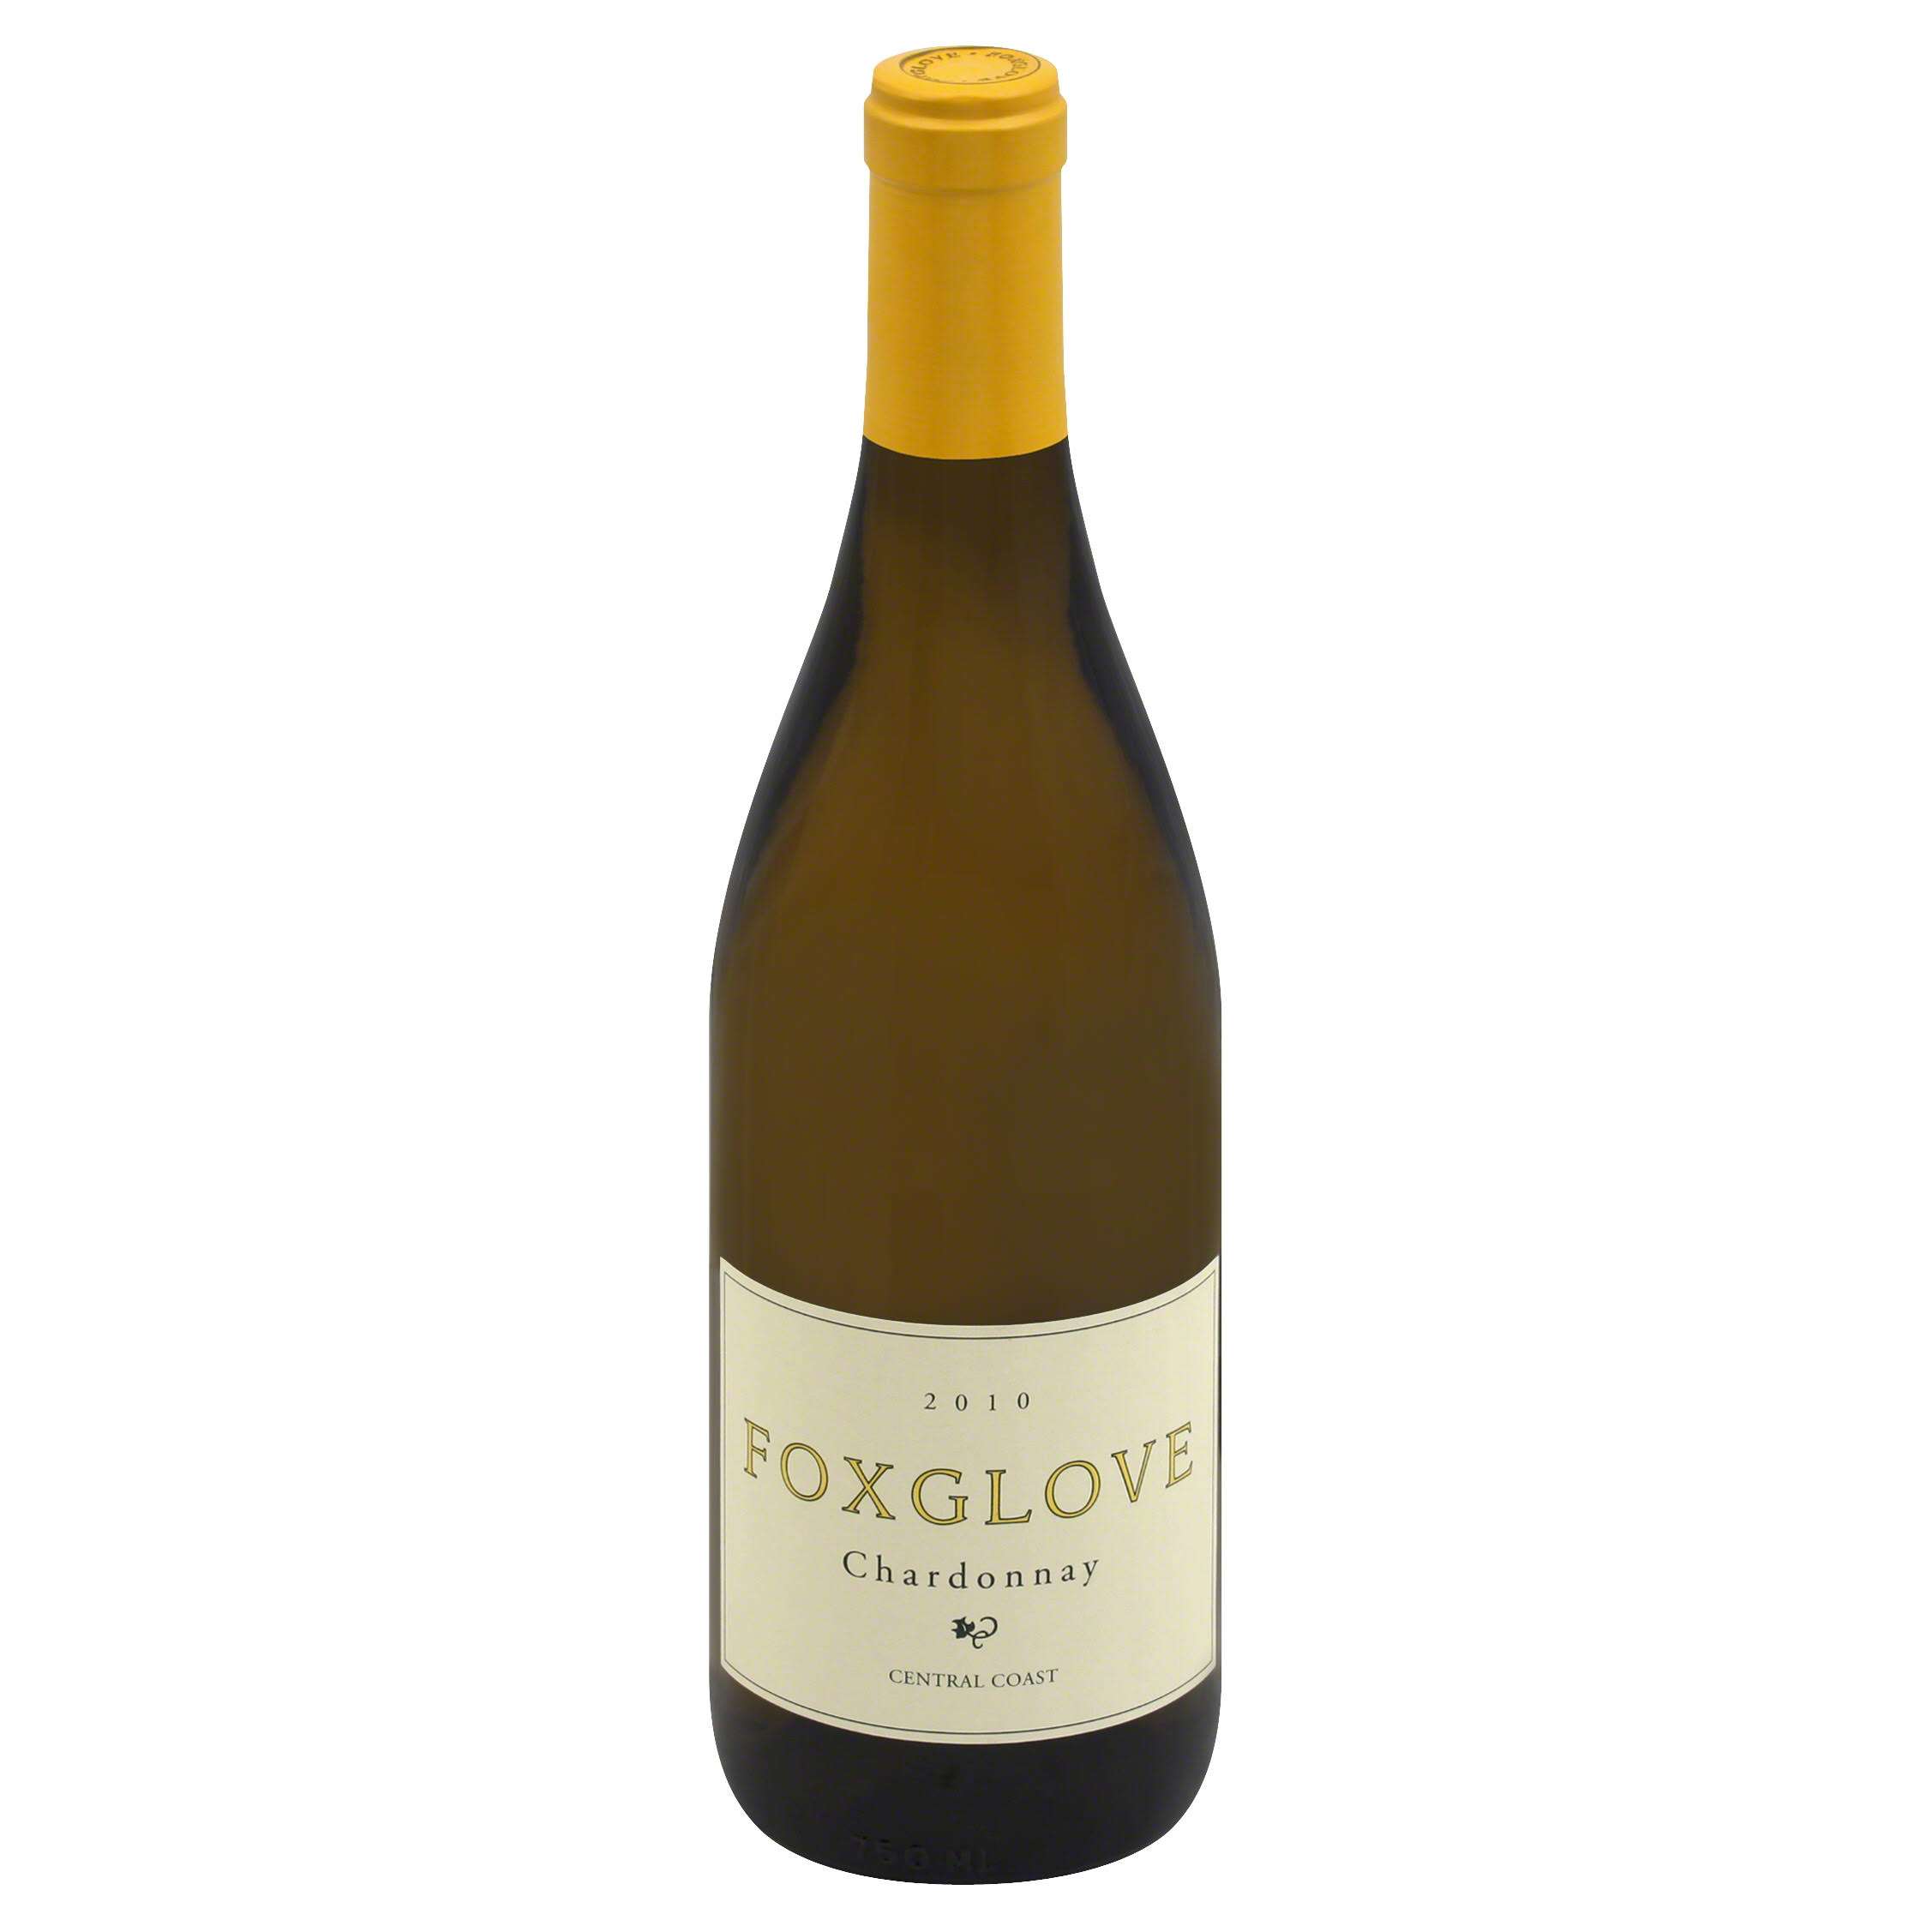 Foxglove Chardonnay, Central Coast, 2010 - 750 ml